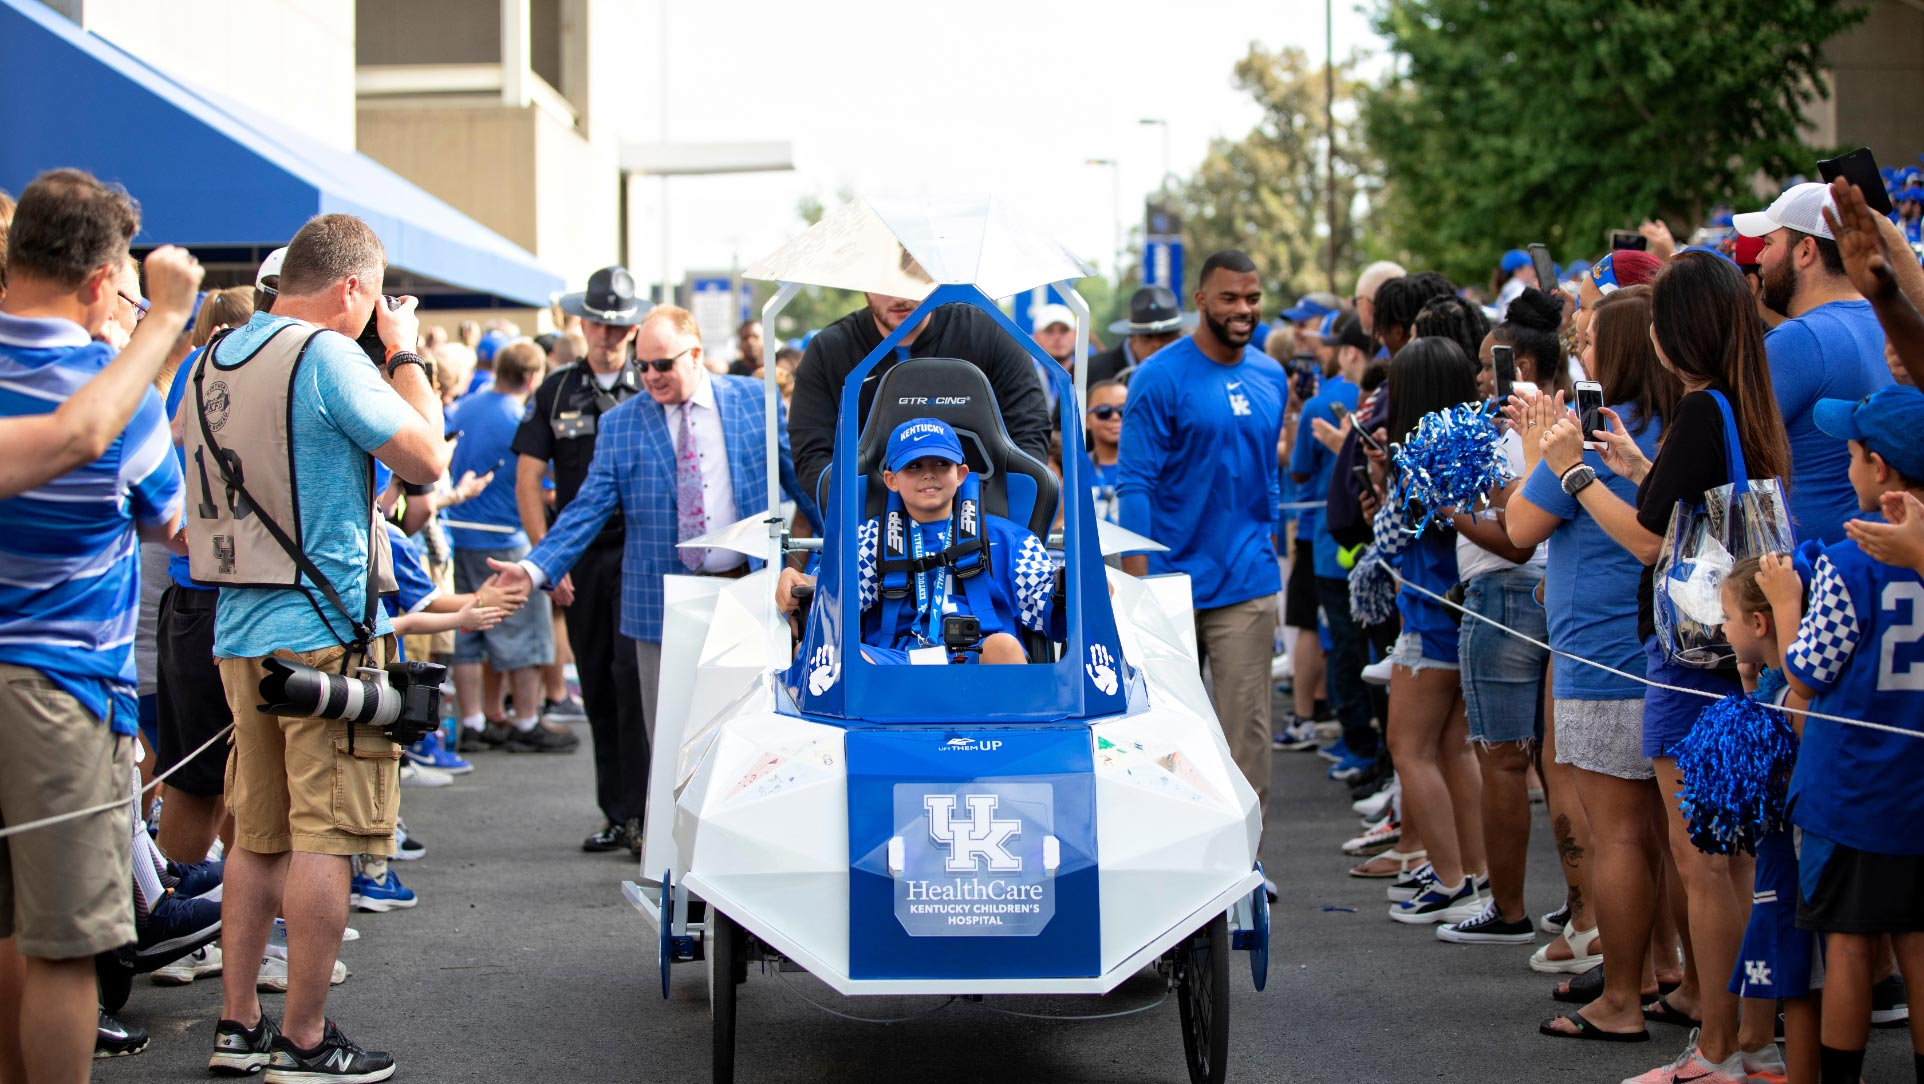 Maximo Shemwell, strapped into the cart, leads the football team down the Cat Walk between rows of cheering fans. Luke Fortner is pushing the cart. Coach Stoops and Courtney Love are visible to either side of the cart.